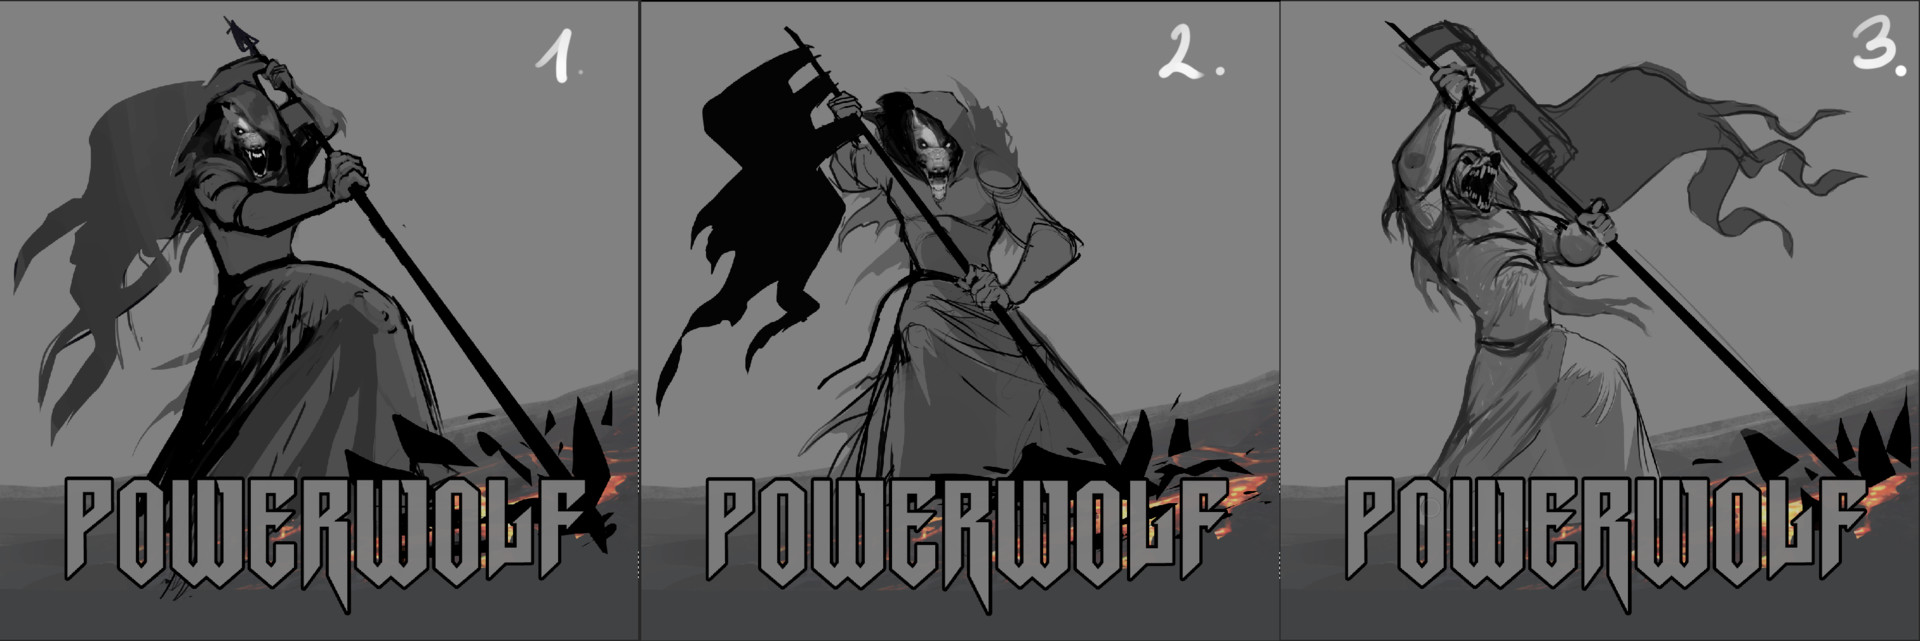 Zsofia Dankova Powerwolf Fire Amp Forgive